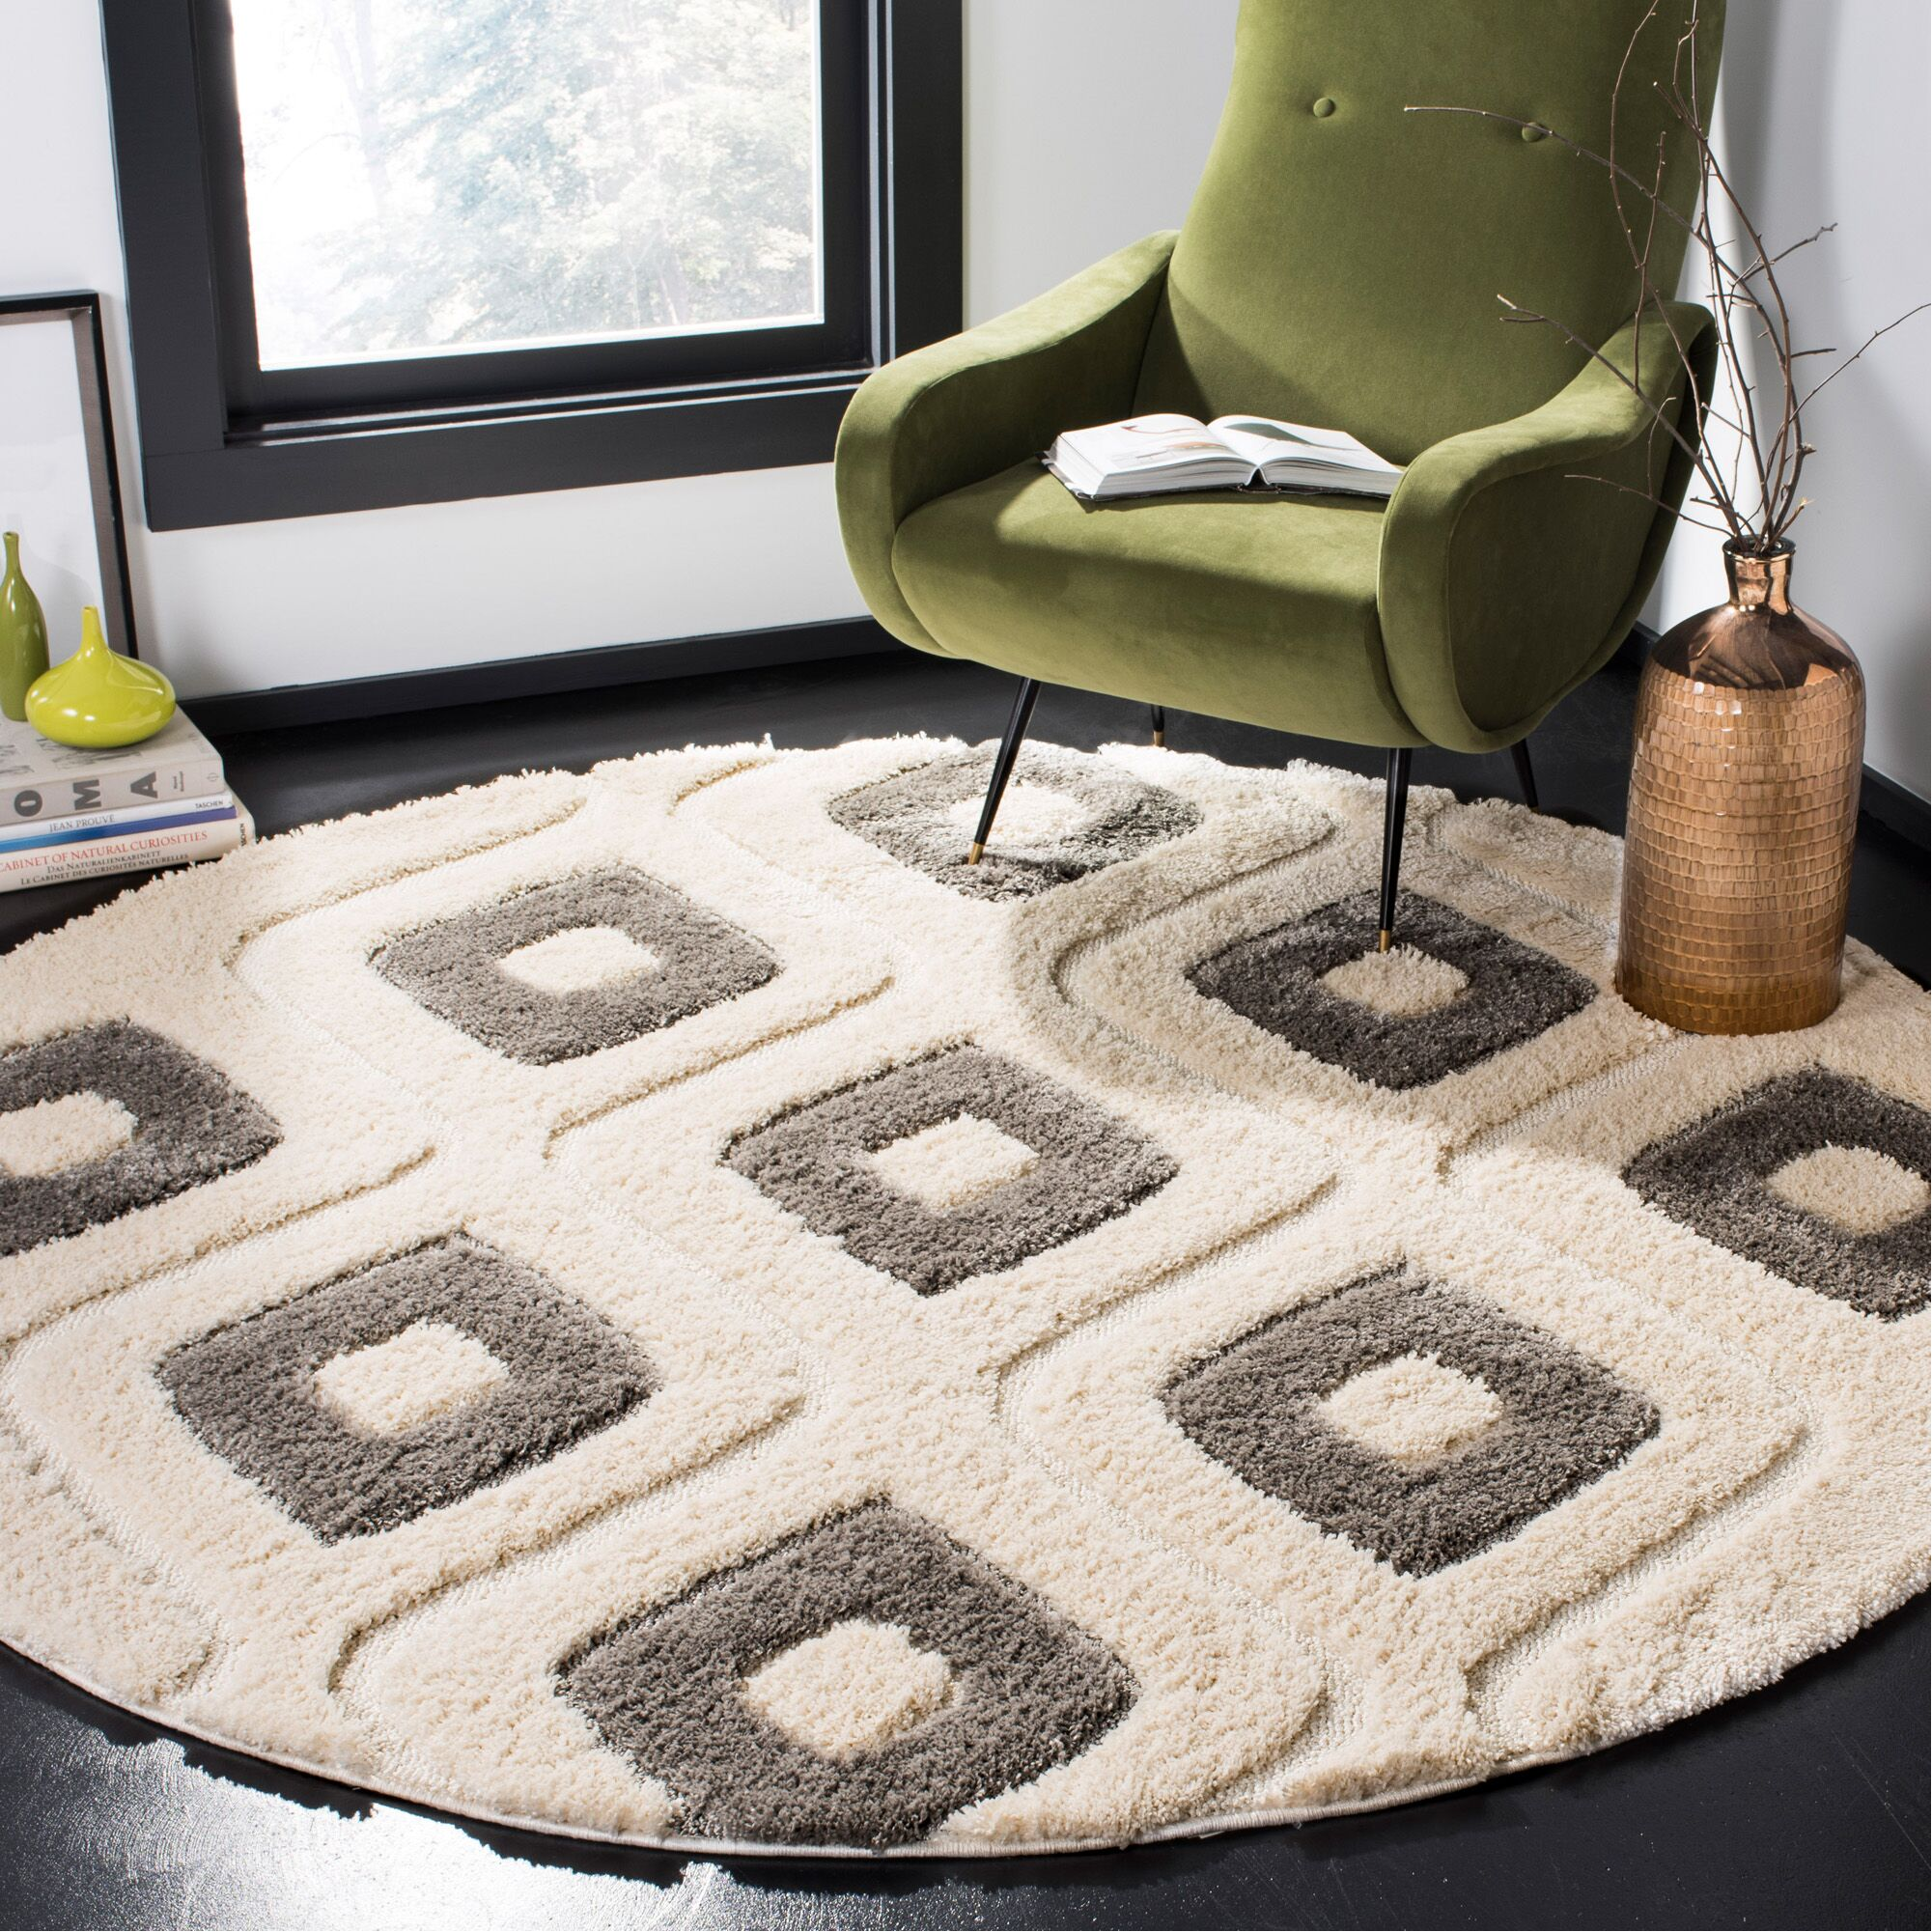 Helms Cream/Gray Area Rug Rug Size: Round 6'7''